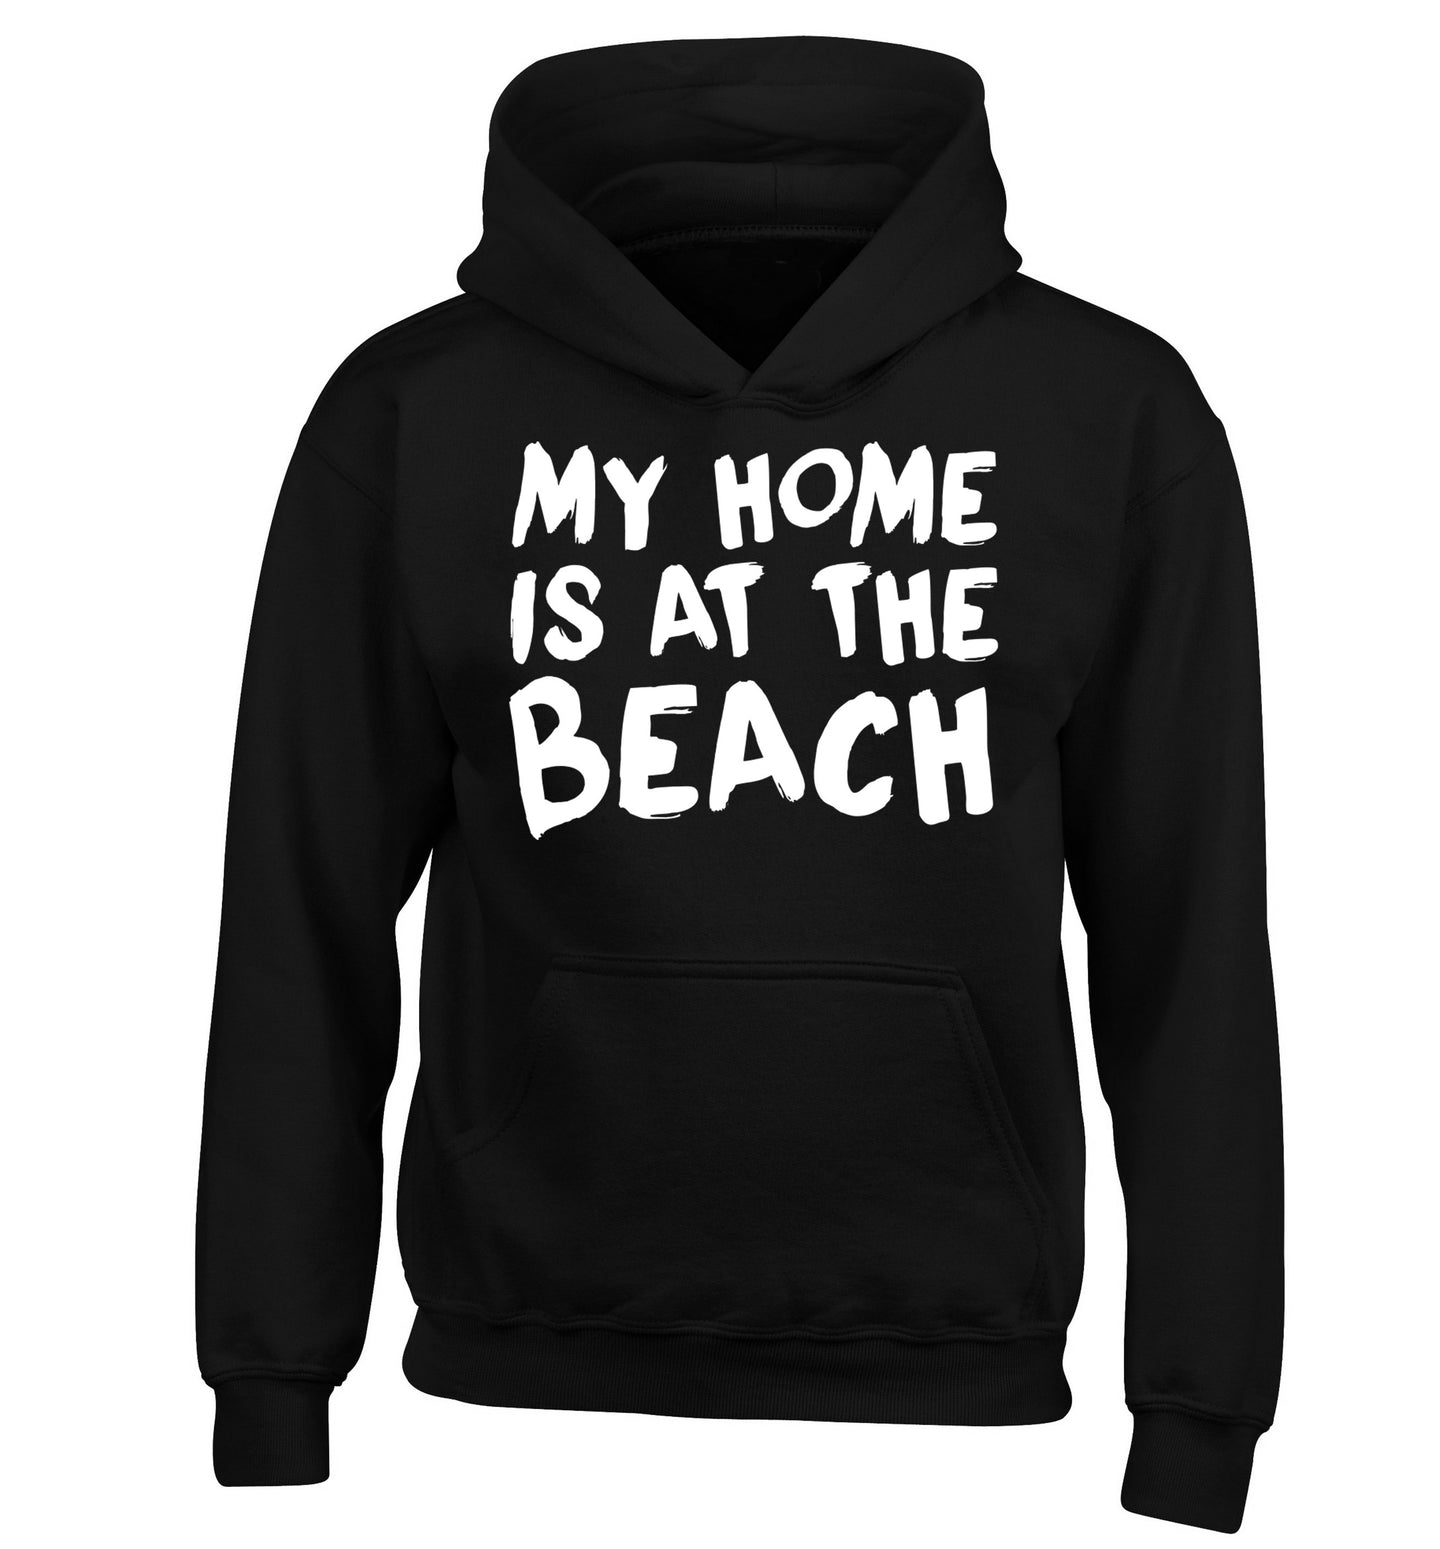 My home is at the beach children's black hoodie 12-14 Years